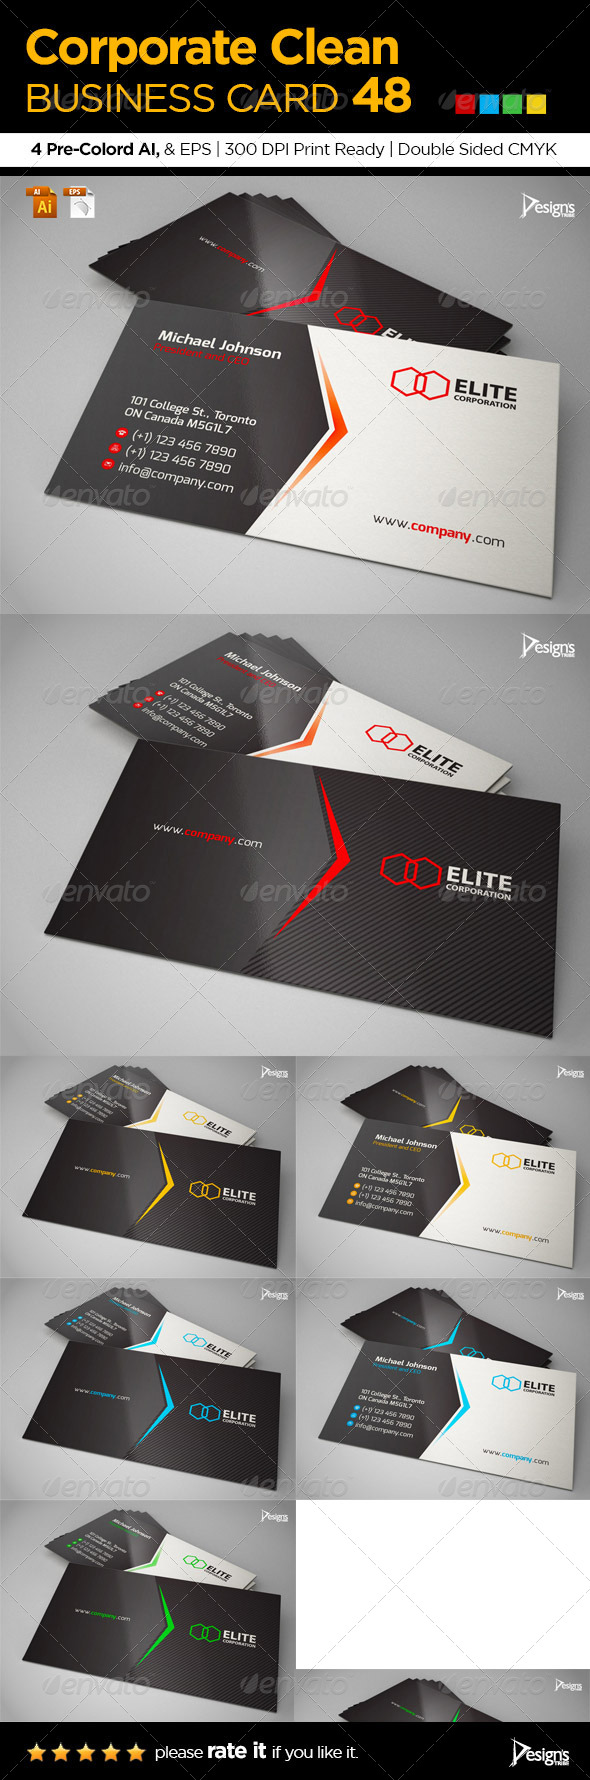 Corporate Clean Business Card 48 - Corporate Business Cards